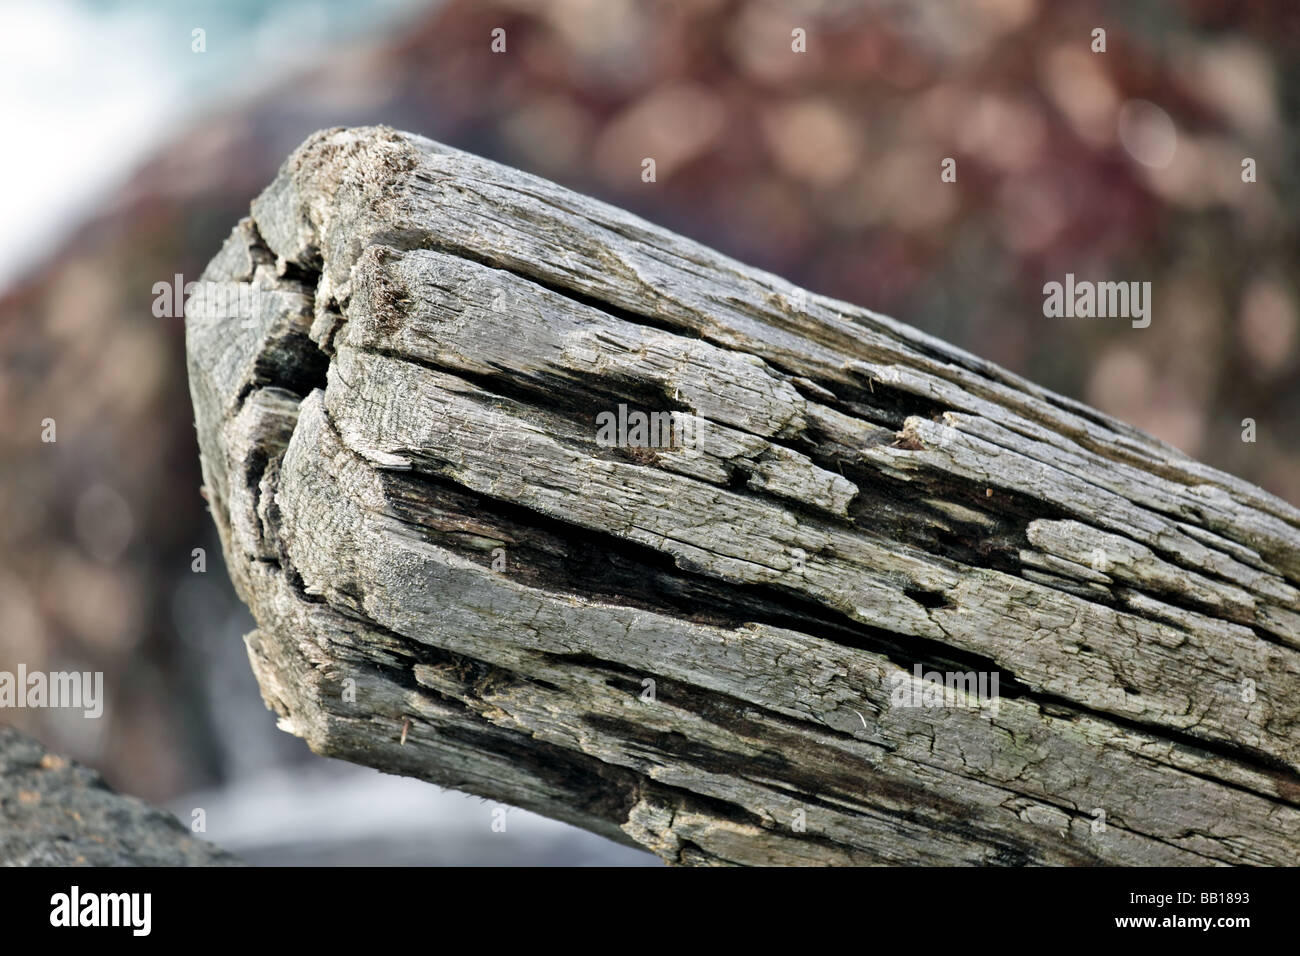 substantial piece of Drift wood washed a shore and wedged between rocks - Stock Image